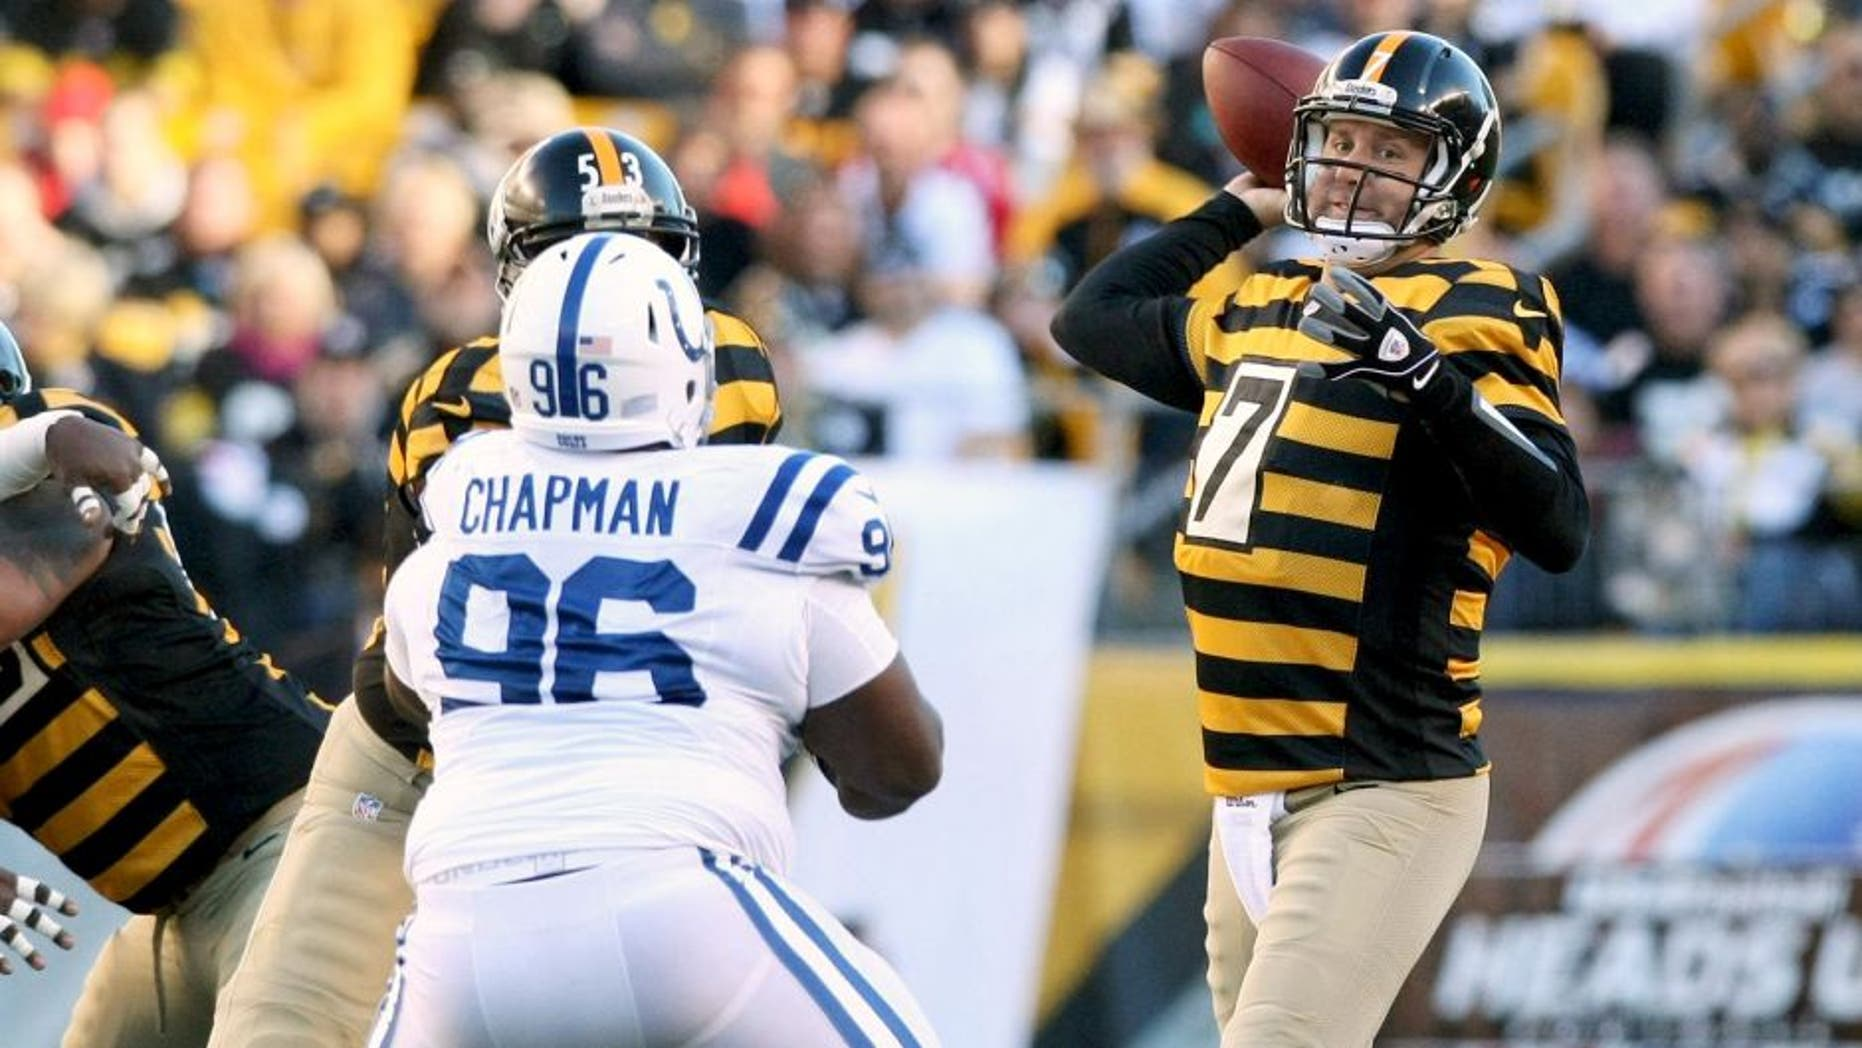 Oct 26, 2014; Pittsburgh, PA, USA; Pittsburgh Steelers quarterback Ben Roethlisberger (7) throws a pass under pressure from Indianapolis Colts nose tackle Josh Chapman (96) during the first quarter of their game at Heinz Field. Mandatory Credit: Jason Bridge-USA TODAY Sports